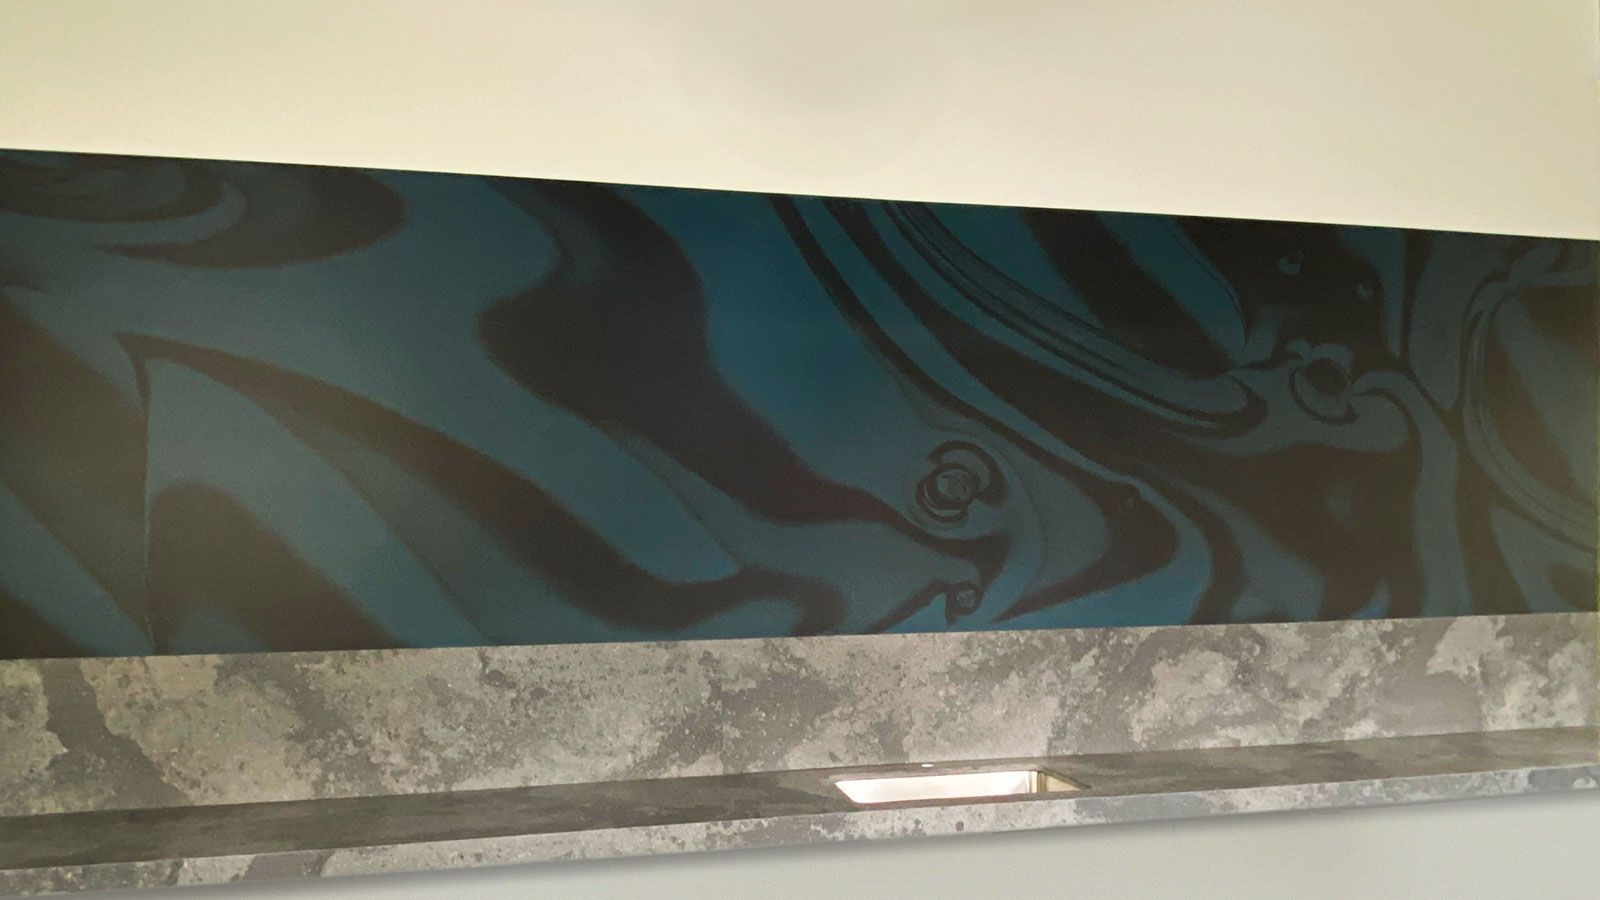 custom interior wall sign mural with unique art graphics made of opaque vinyl for office indoor branding and decorating